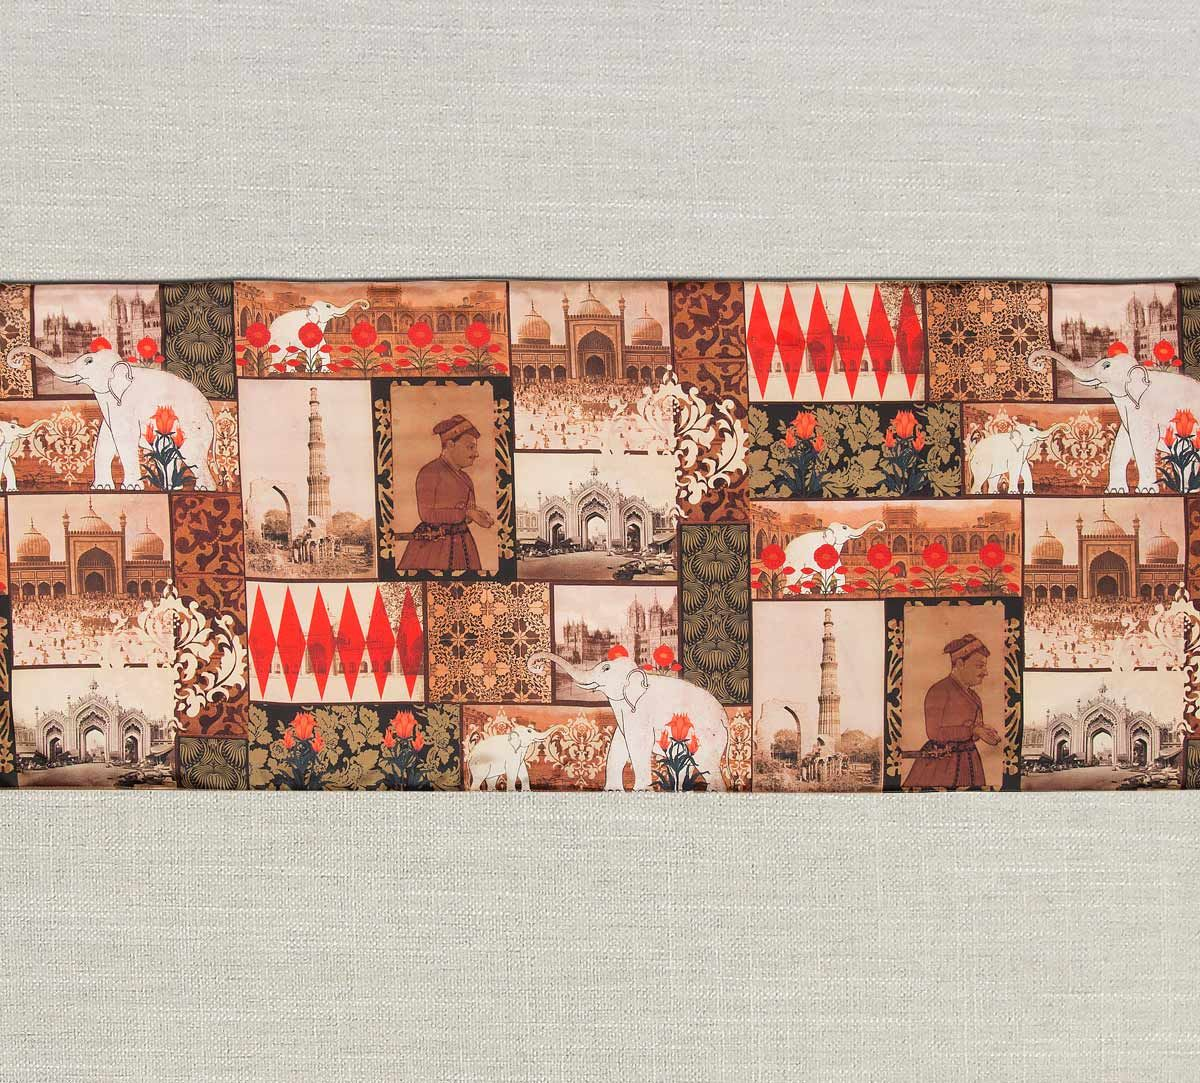 India Circus The Mughal Era Bed and Table Runner